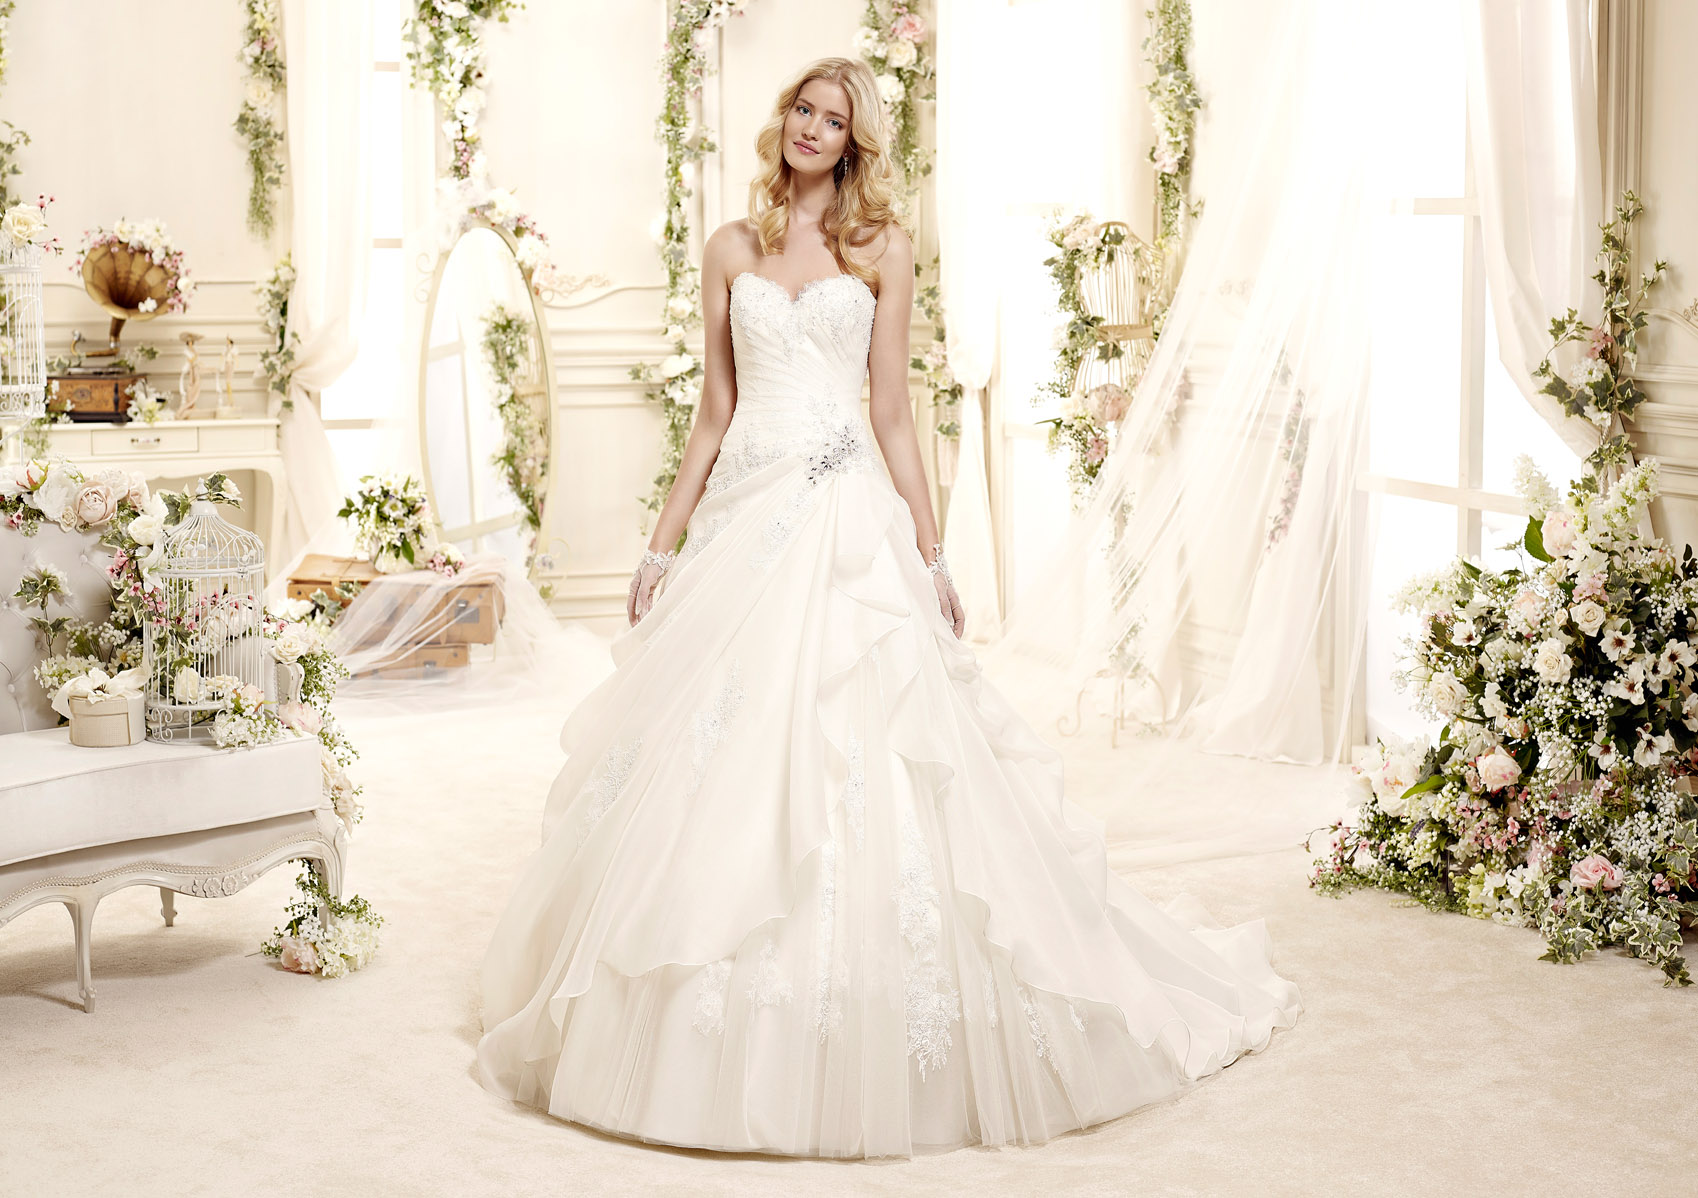 c660ffbf8ce9 Colet Bridal Collection 2015 - Nicole Fashion Group